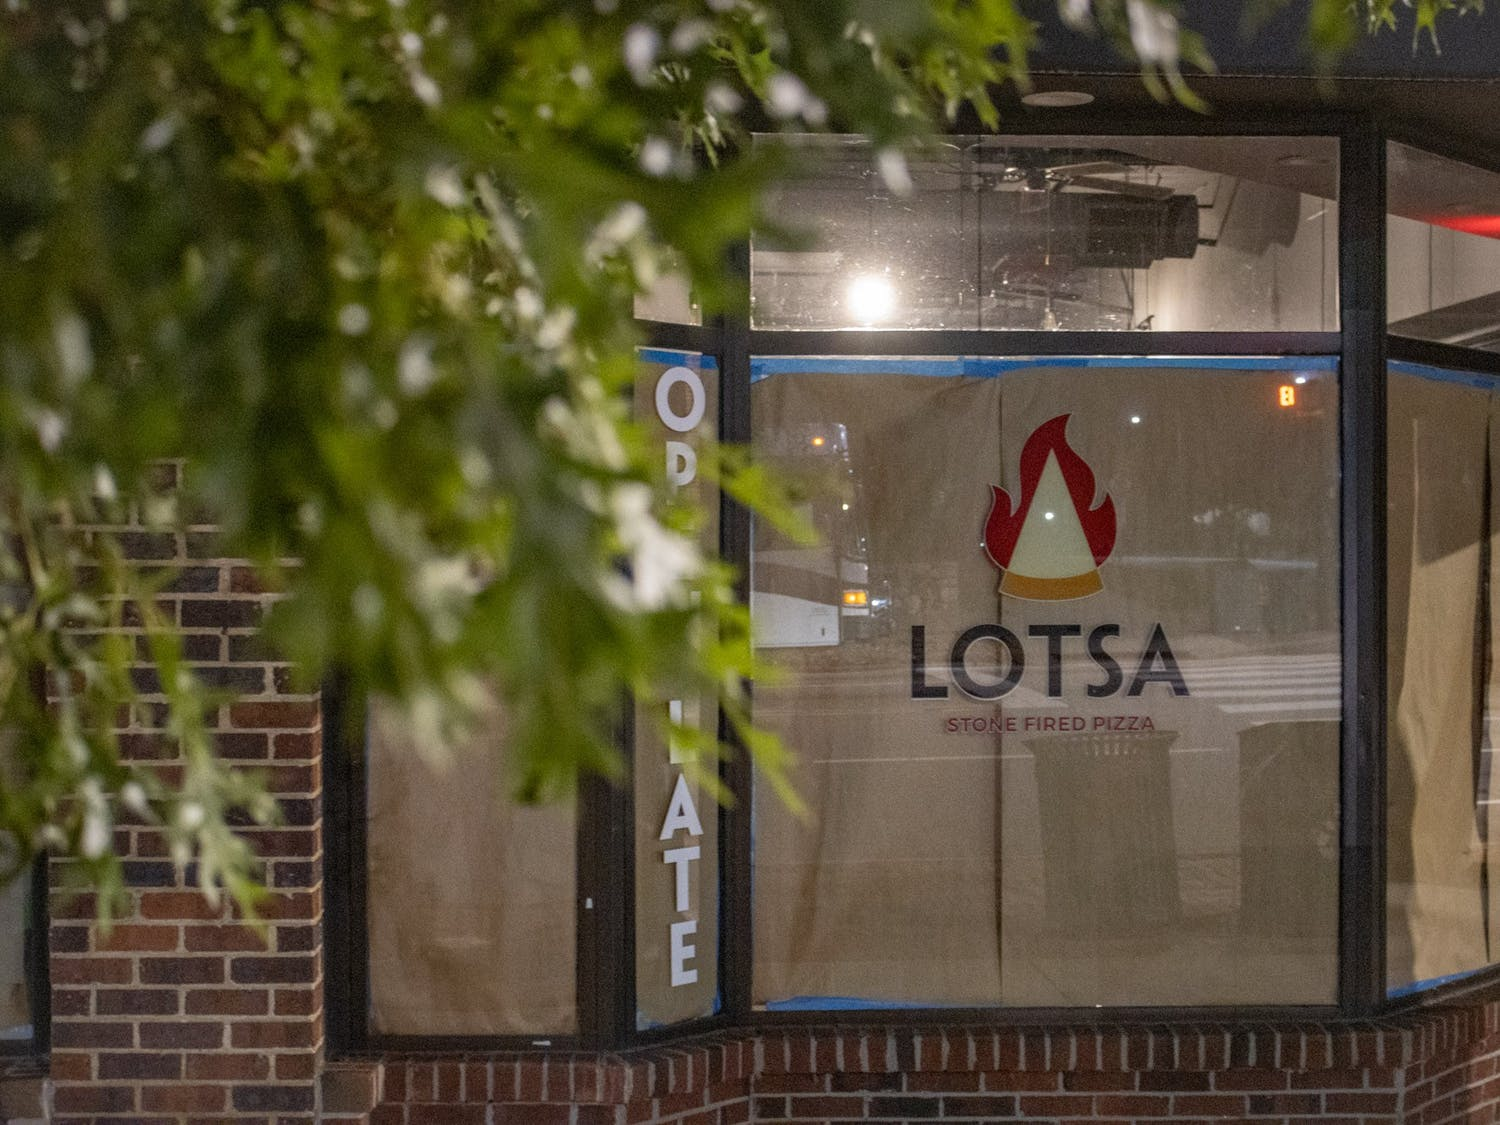 Lotsa Stone Fired Pizza closed during the pandemic. Seafood Destiny Catering, a Greensboro-based eatery, is moving into Lotsa's former location on the corner of Franklin and Columbia Streets.